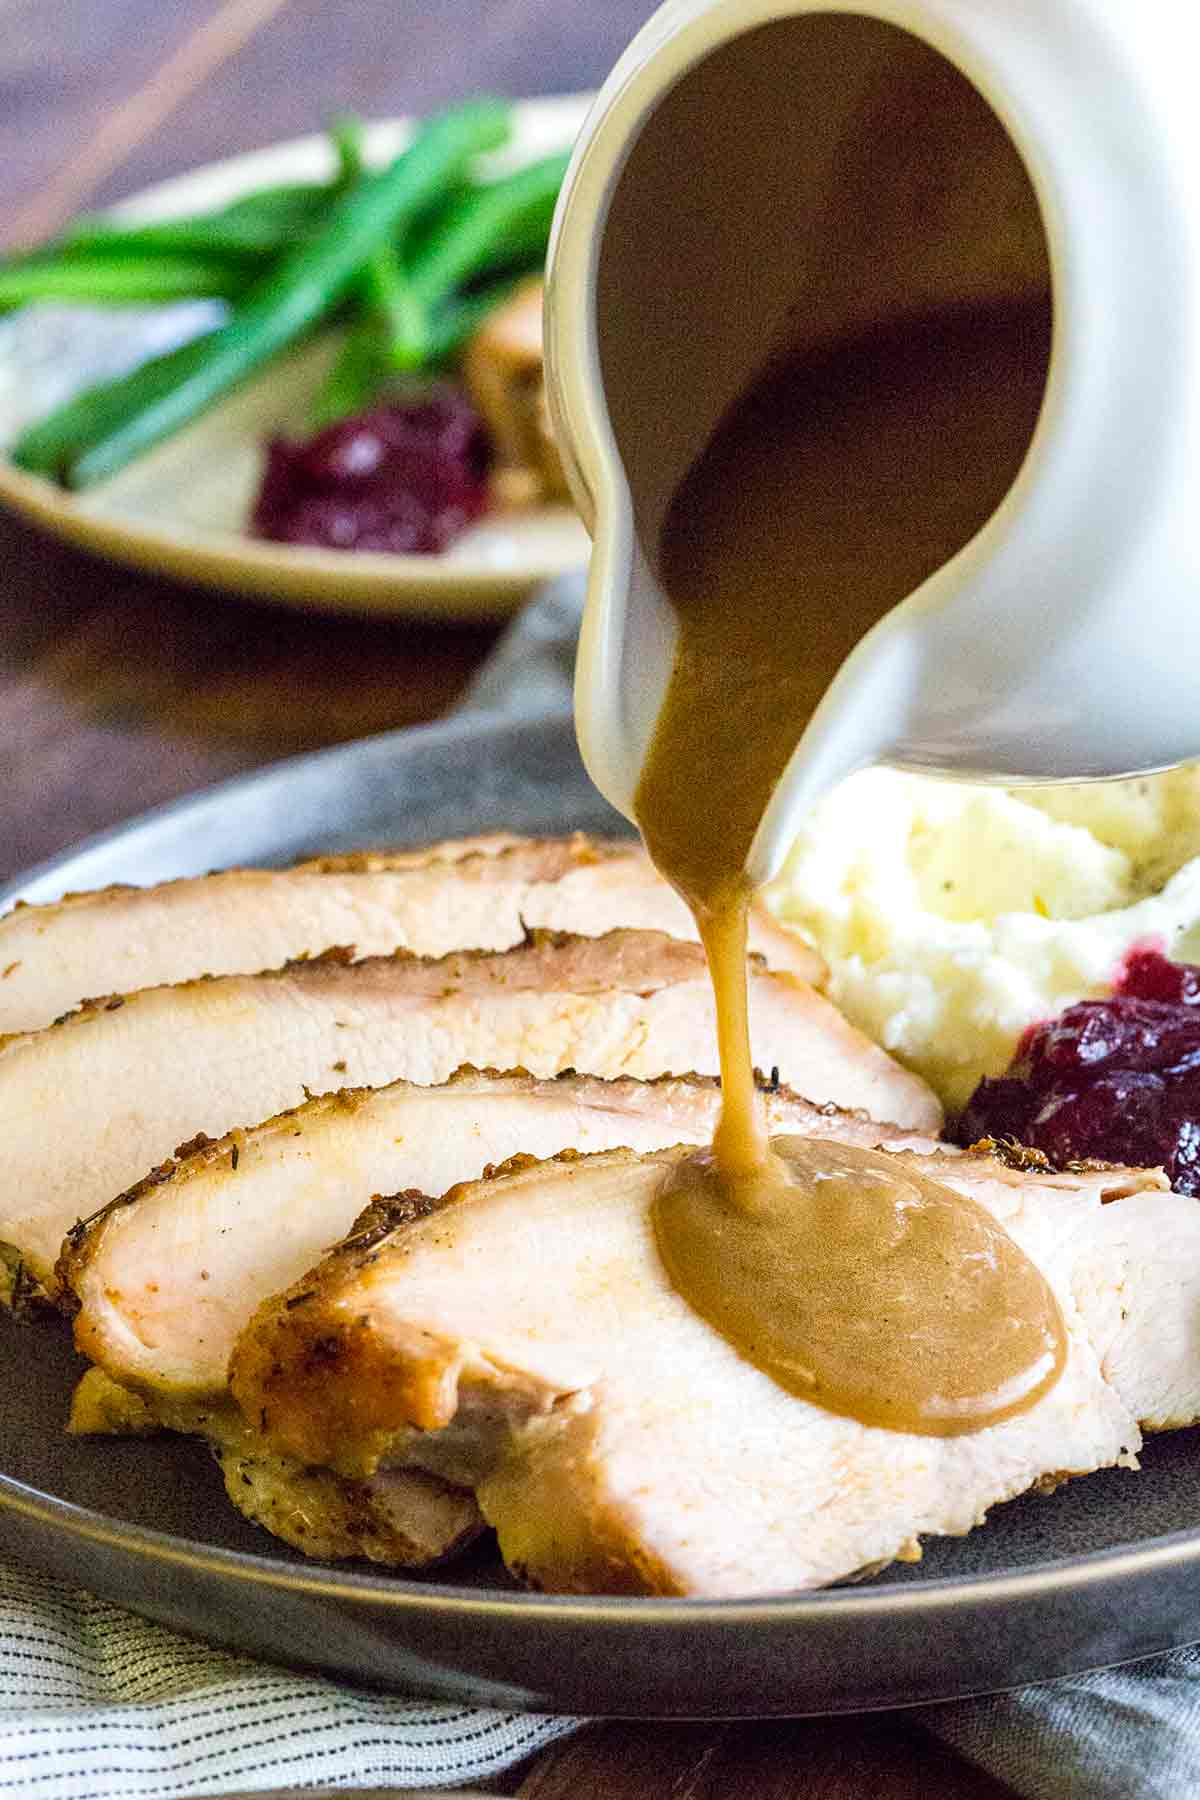 Pouring gravy over slices of turkey on a plate